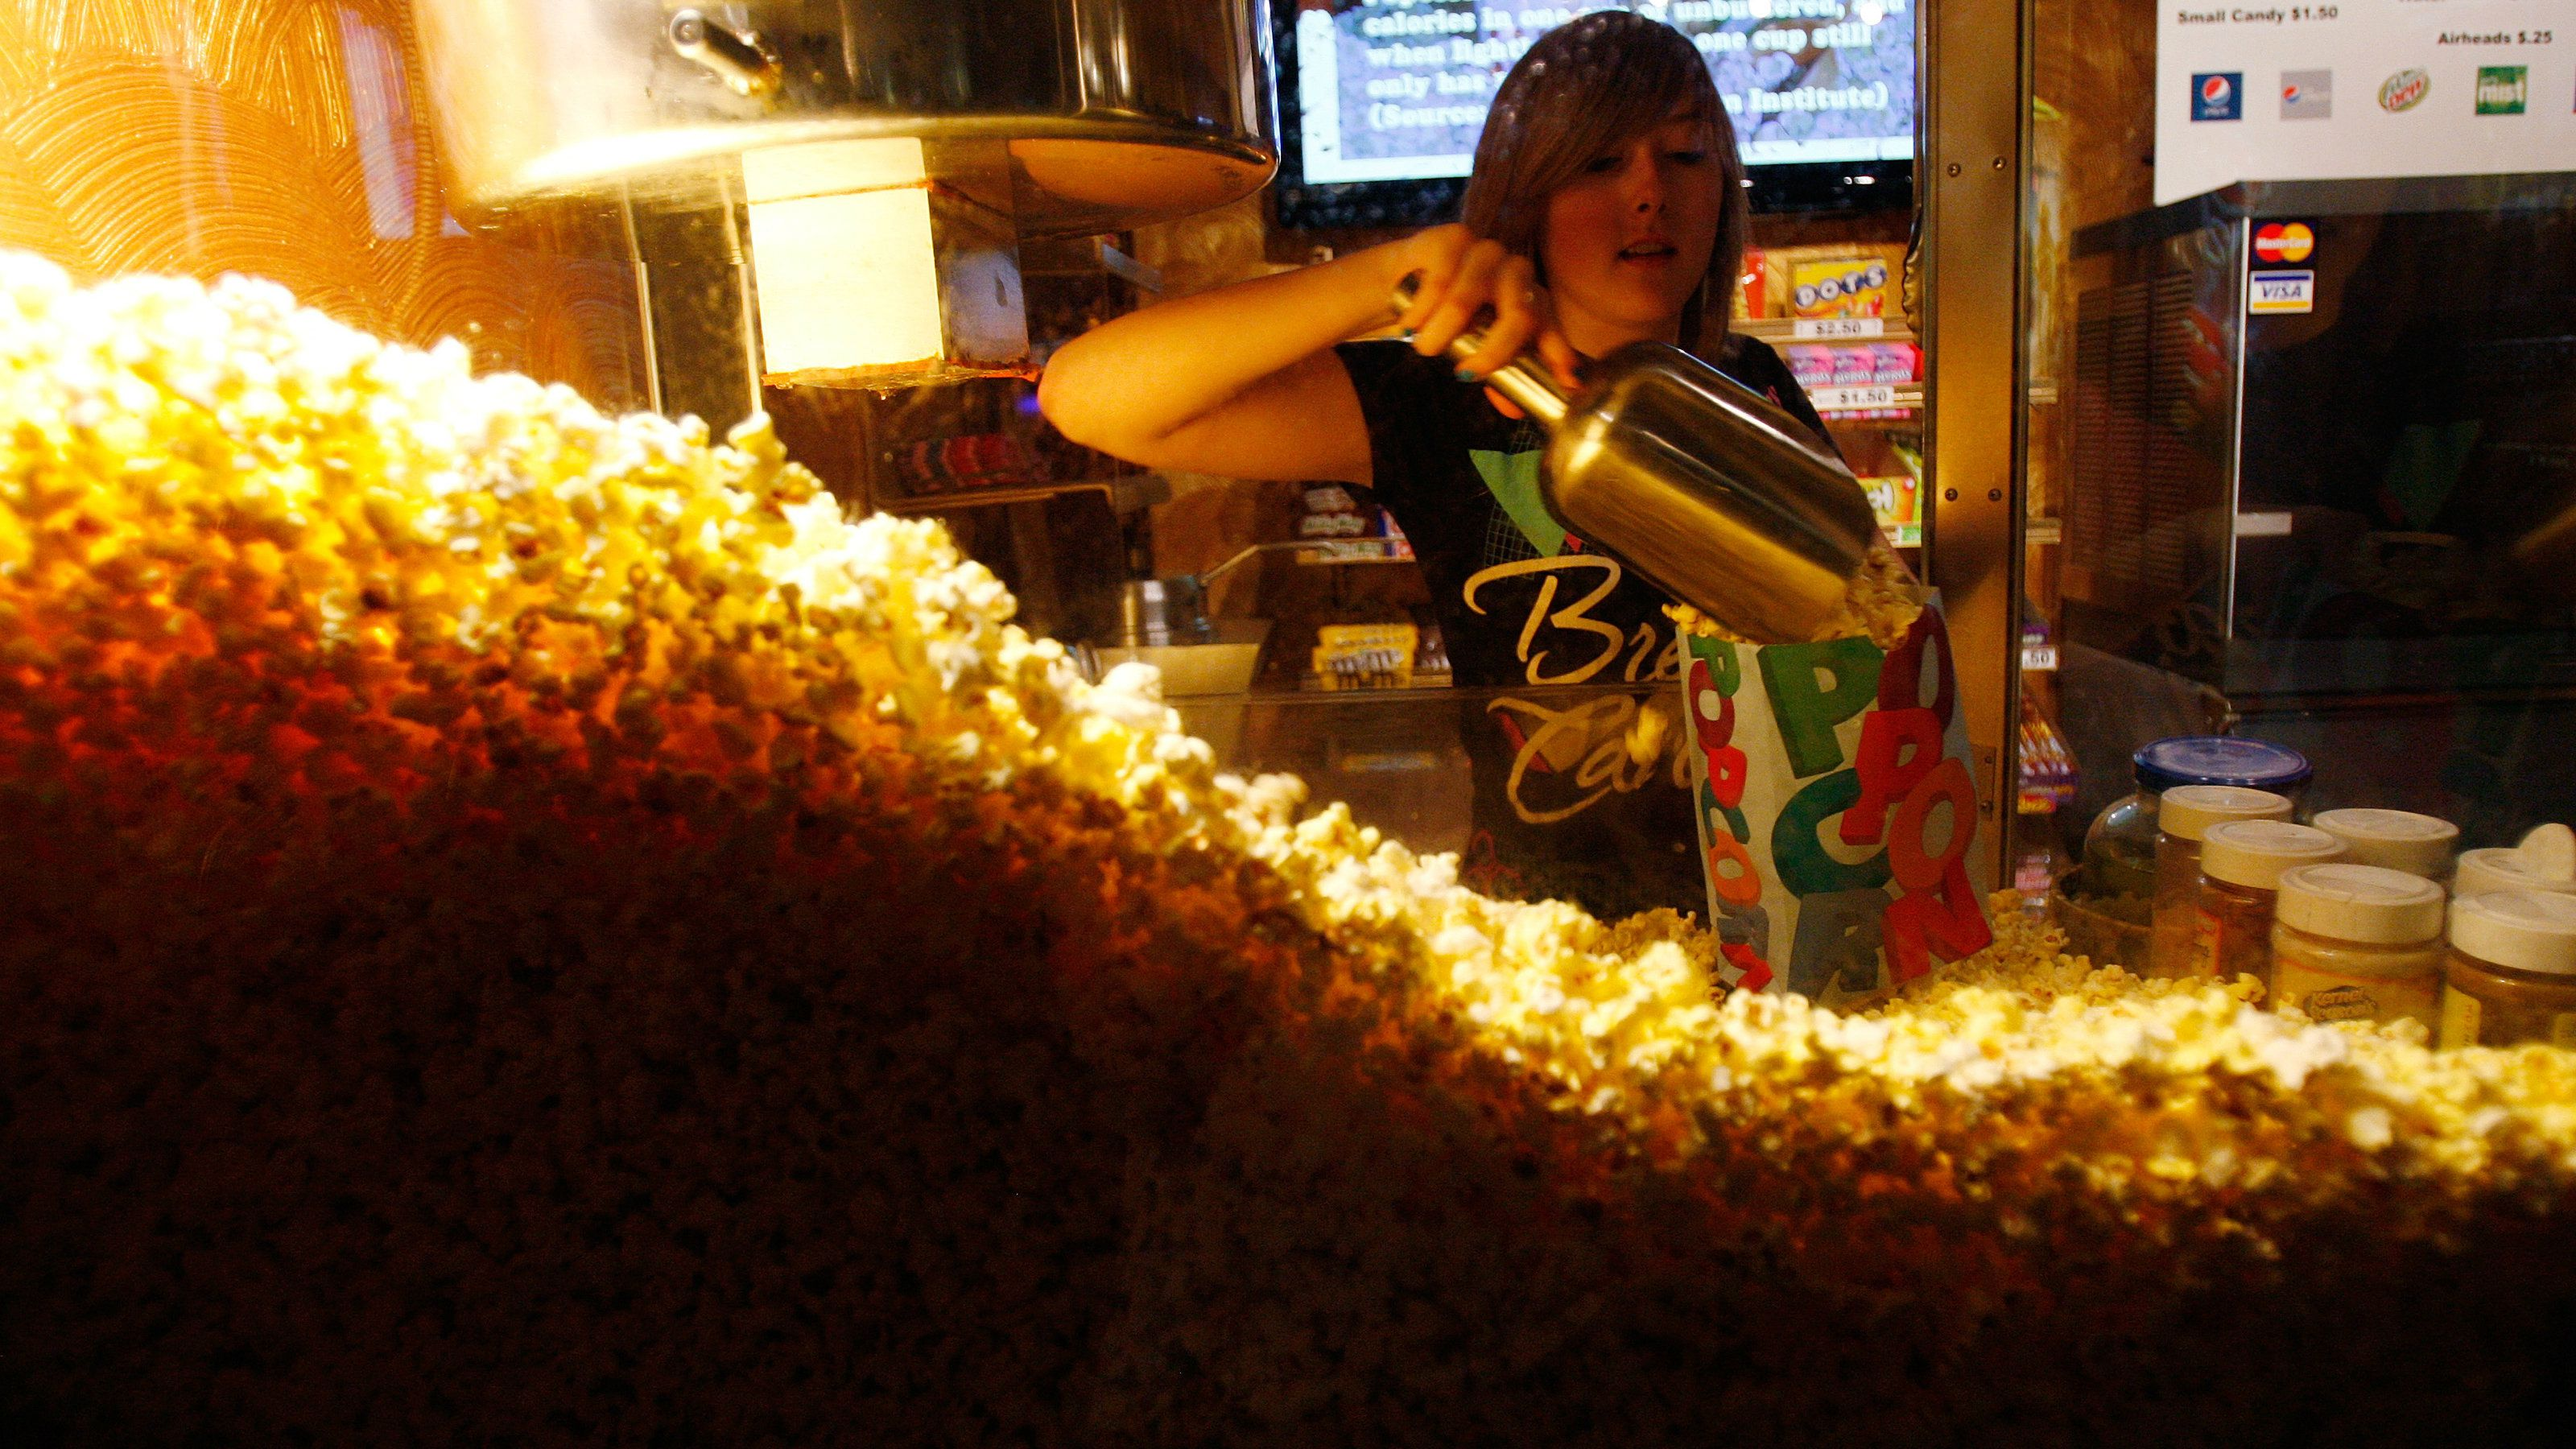 Cailynn Williams, 17, fills a bag of popcorn for a customer at the New Strand Theater in West Liberty, Iowa July 8, 2011. Todd Leach, who owns the New Strand Theater, says that ticket sales are down from last summer due to the economy. Voters in the Iowa caucus and the New Hampshire primary will be the first to cast ballots in the upcoming U.S. Presidential race.